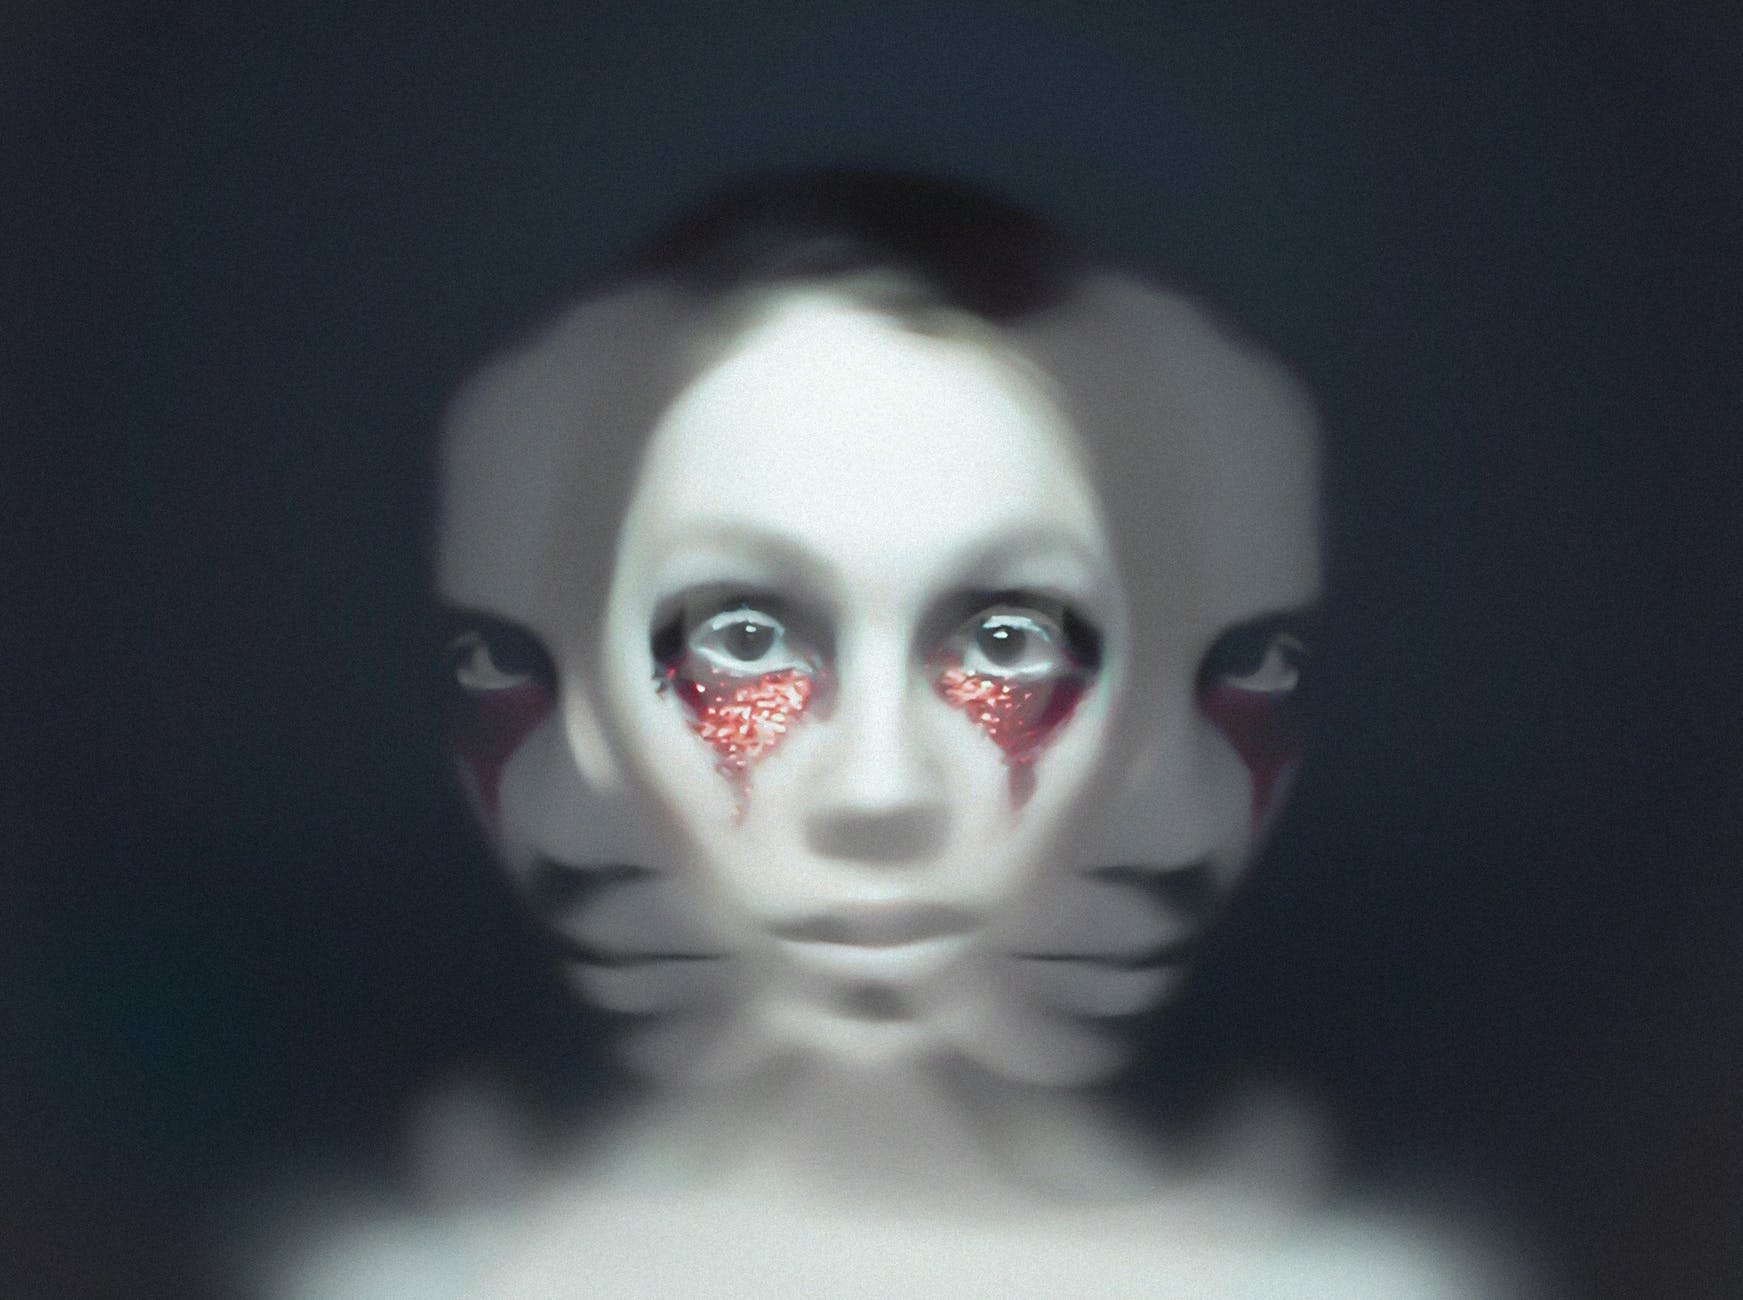 Triple exposure of a face with triangle makeup under the eyes